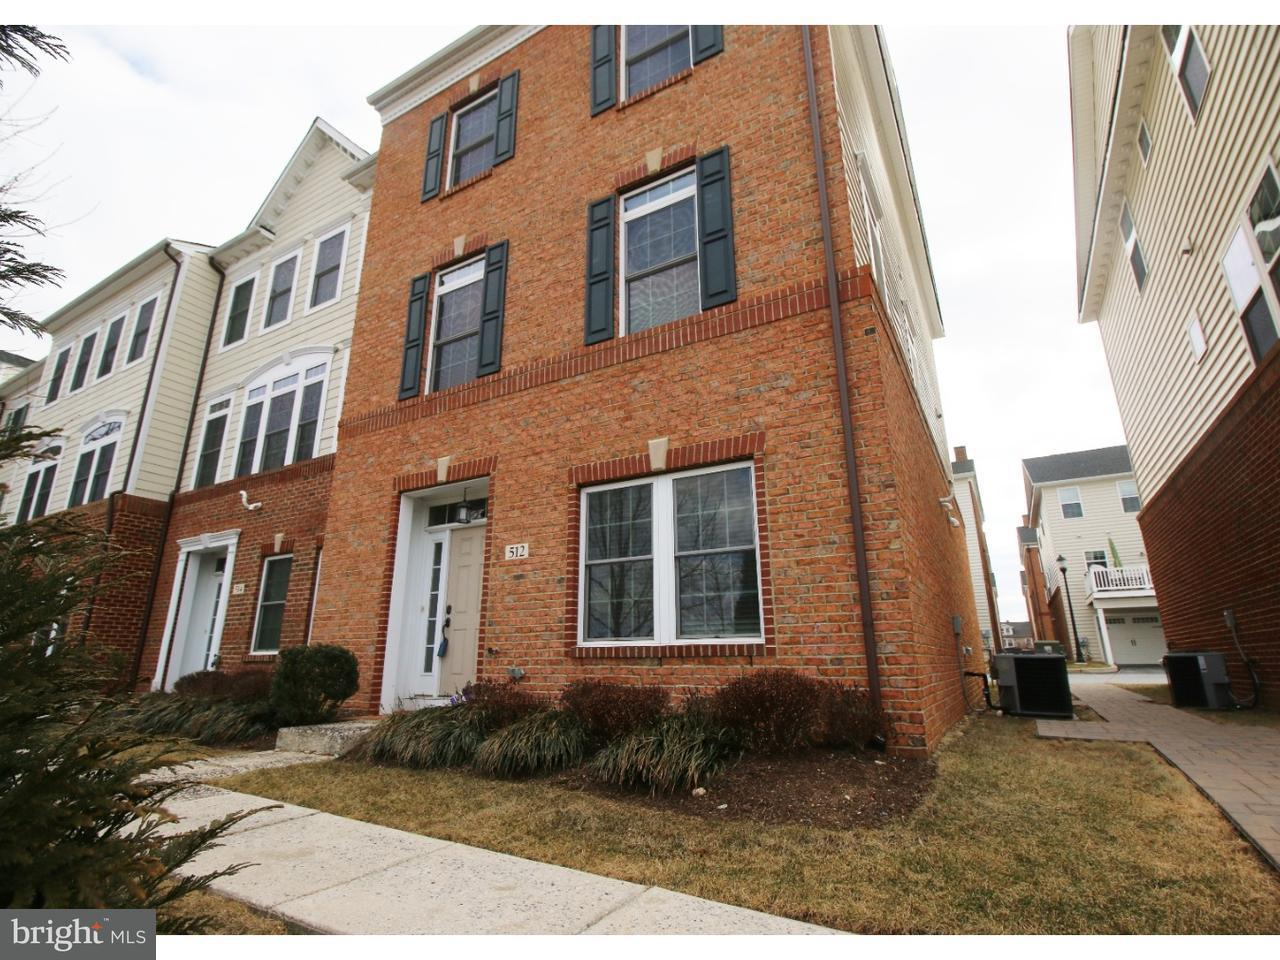 Townhouse for Rent at 512 RAYMOND DR #7 West Chester, Pennsylvania 19380 United States